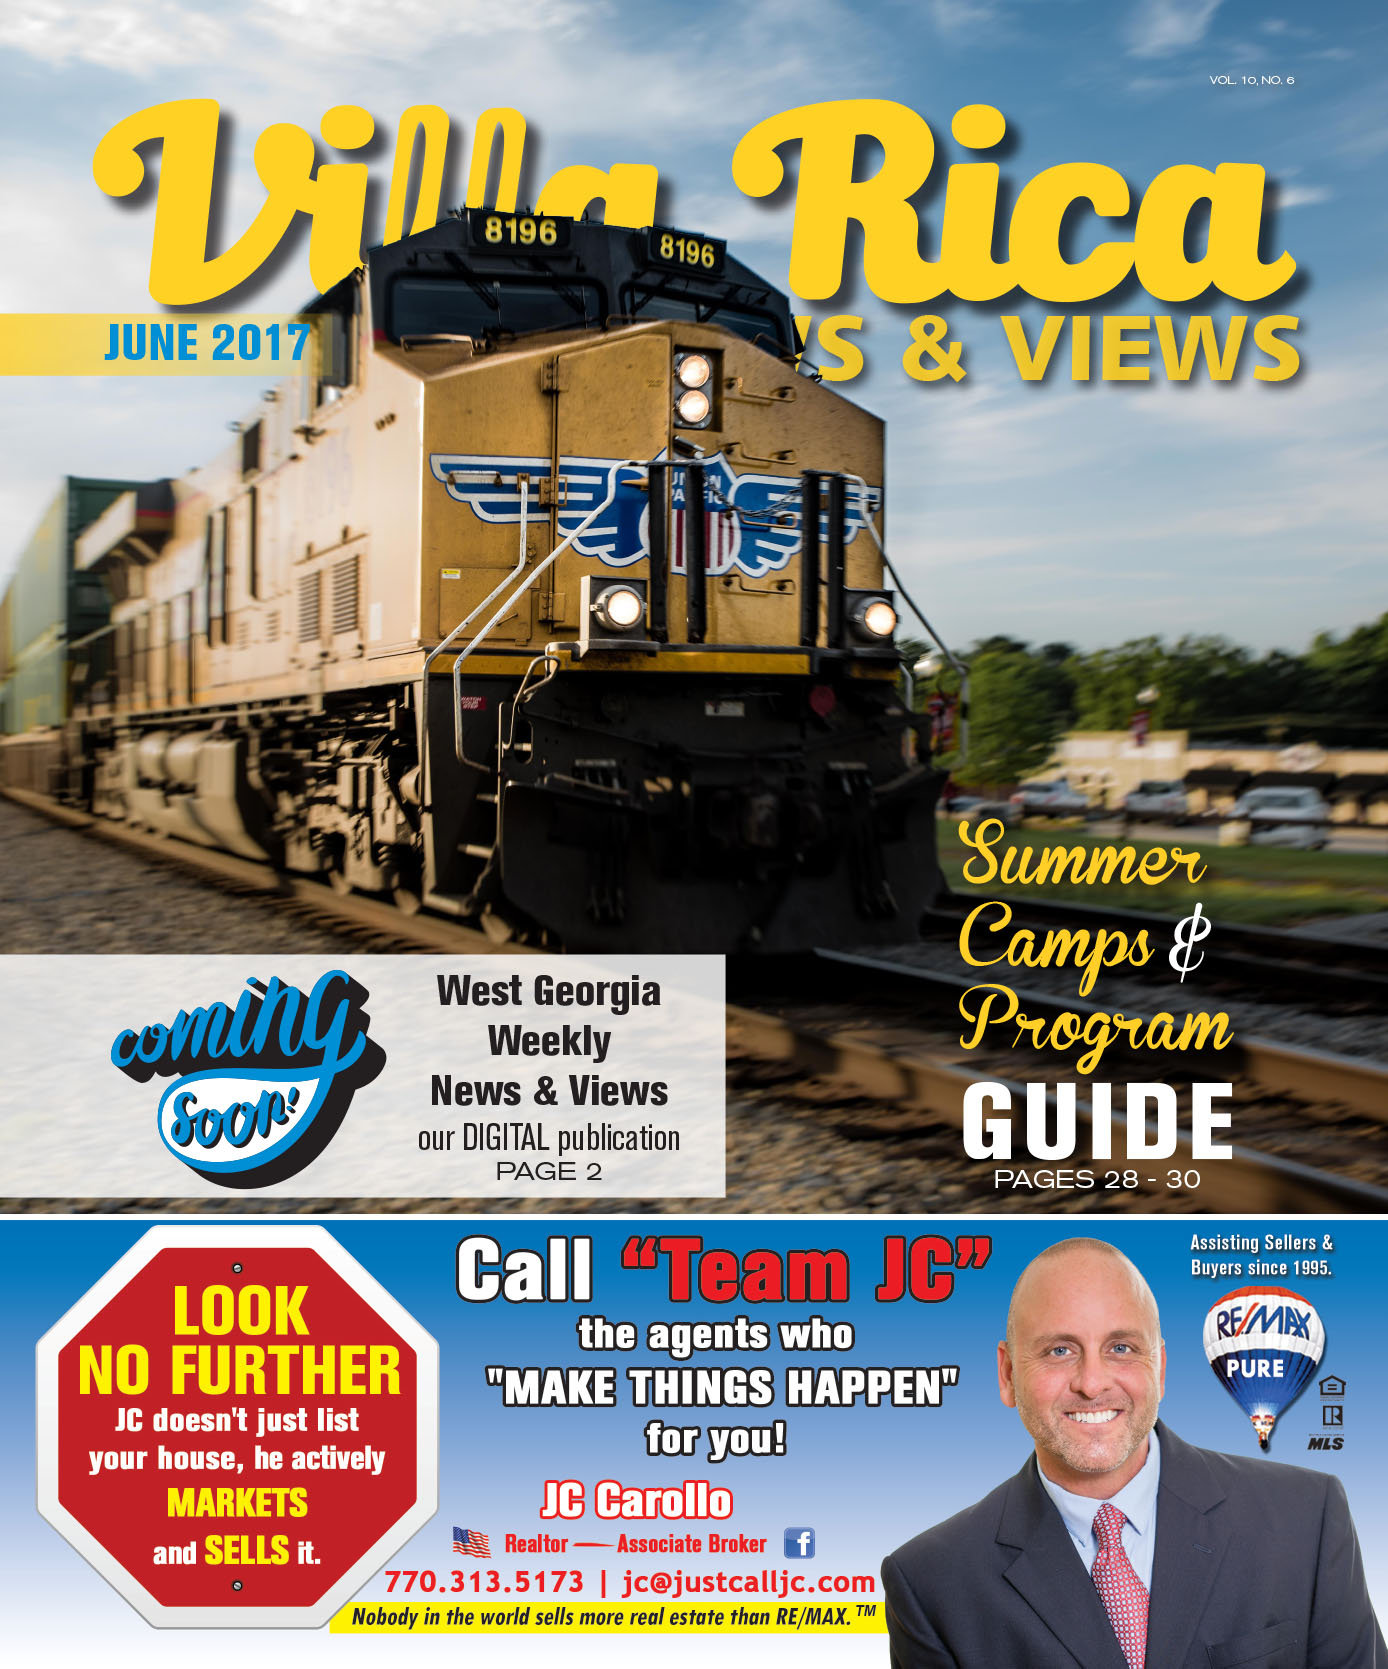 VRNV - June 2017 Cover